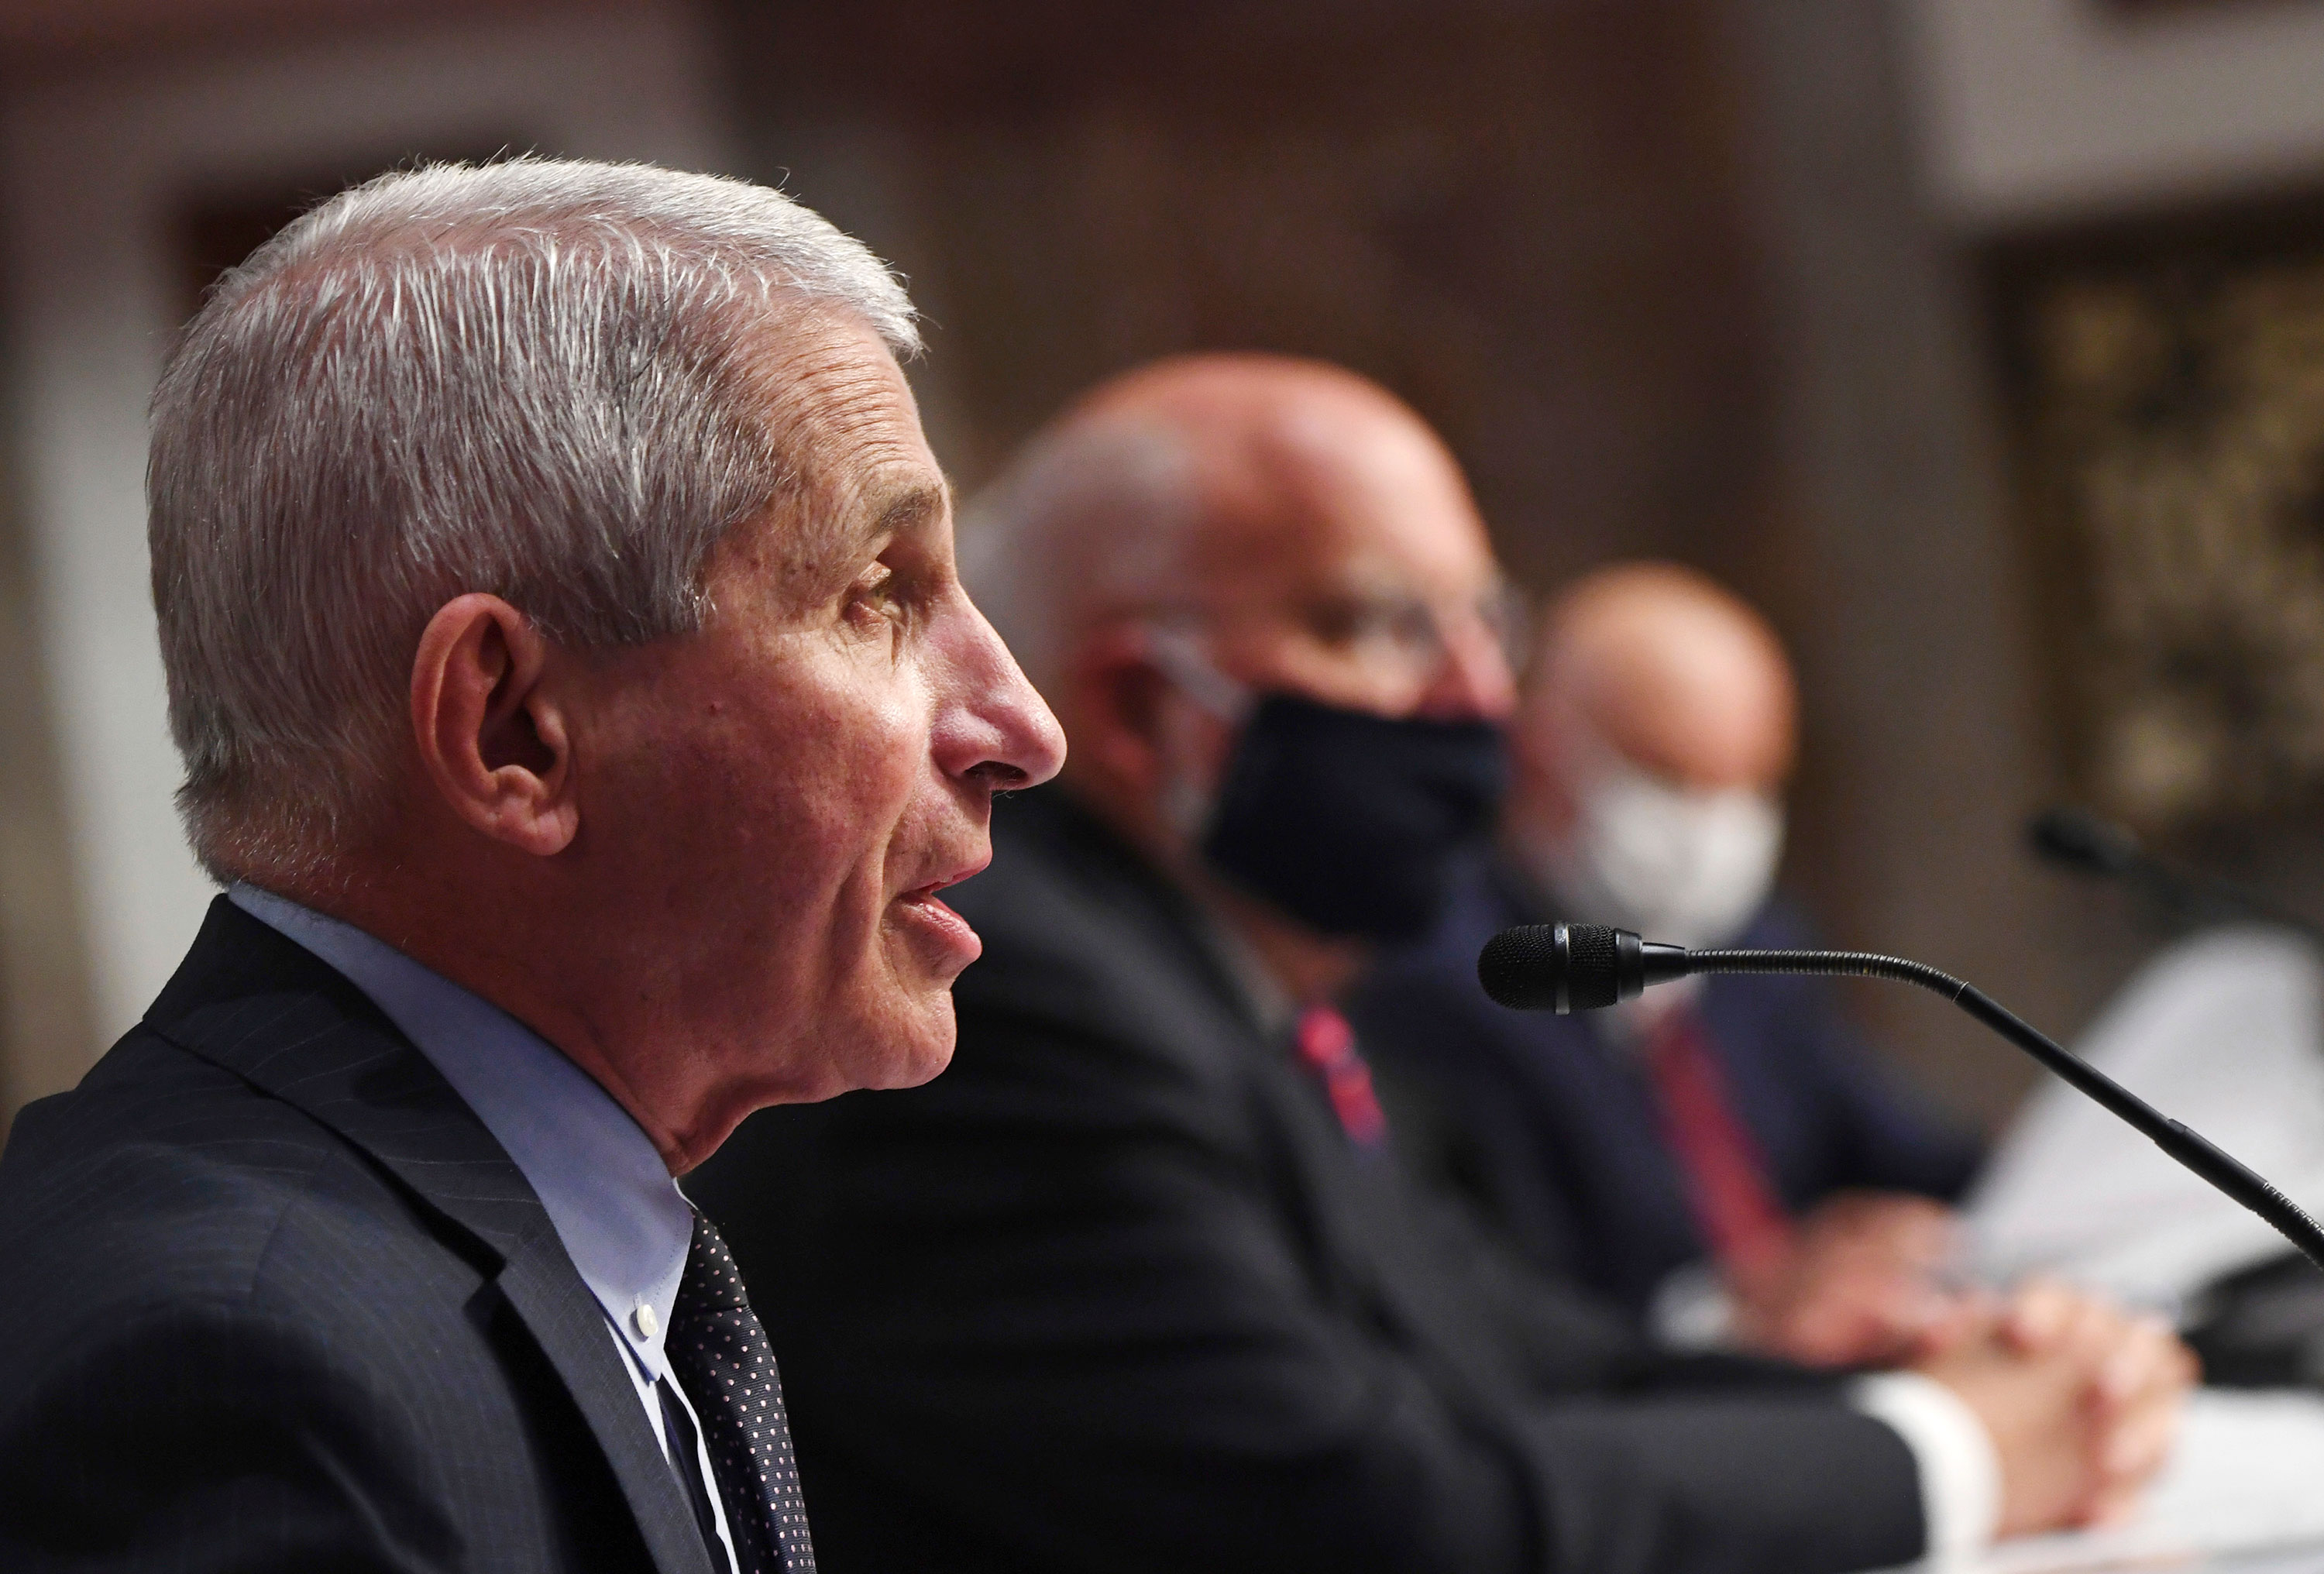 Dr. Anthony Fauci, director of the National Institute for Allergy and Infectious Diseases, testifies before a Senate Health, Education, Labor and Pensions Committee hearing on June 30 in Washington, DC.